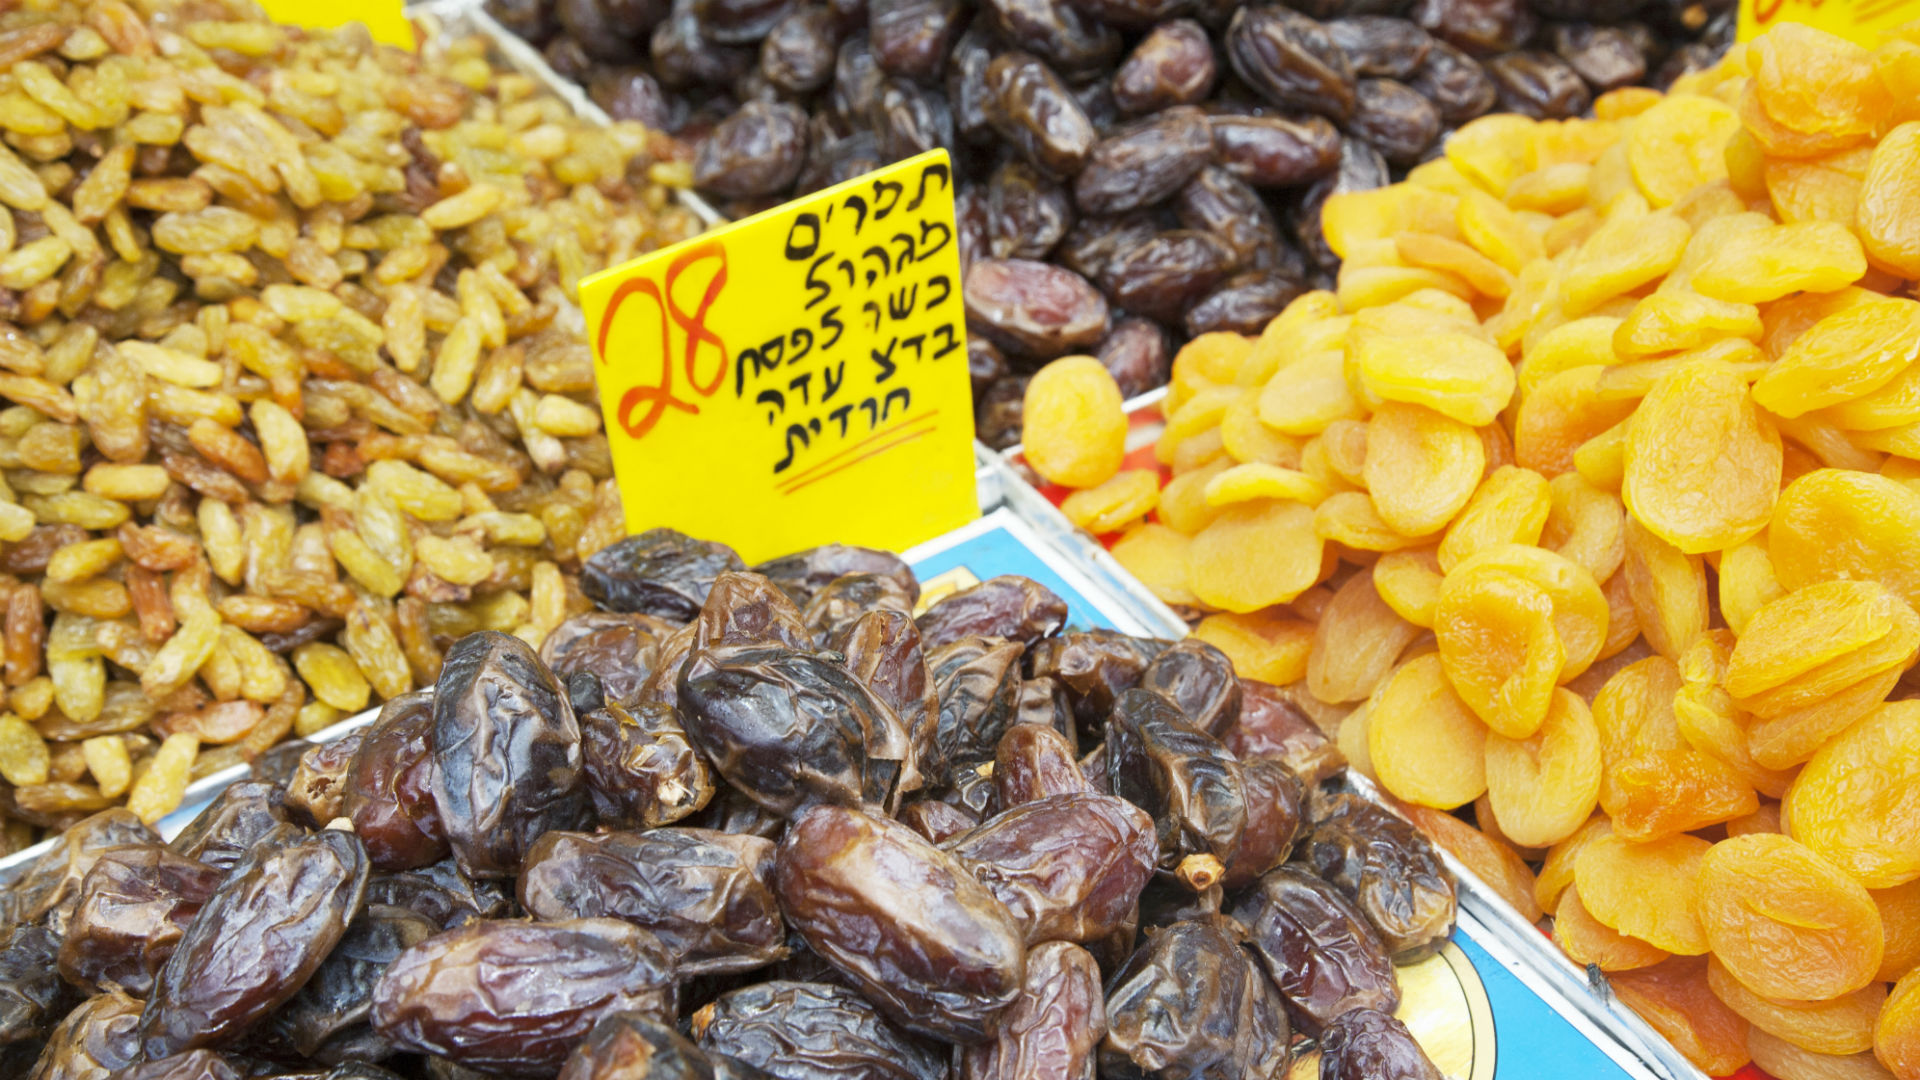 Dates and other dried fruits on display at Mahane Yehuda Market, in Jerusalem, Israel.